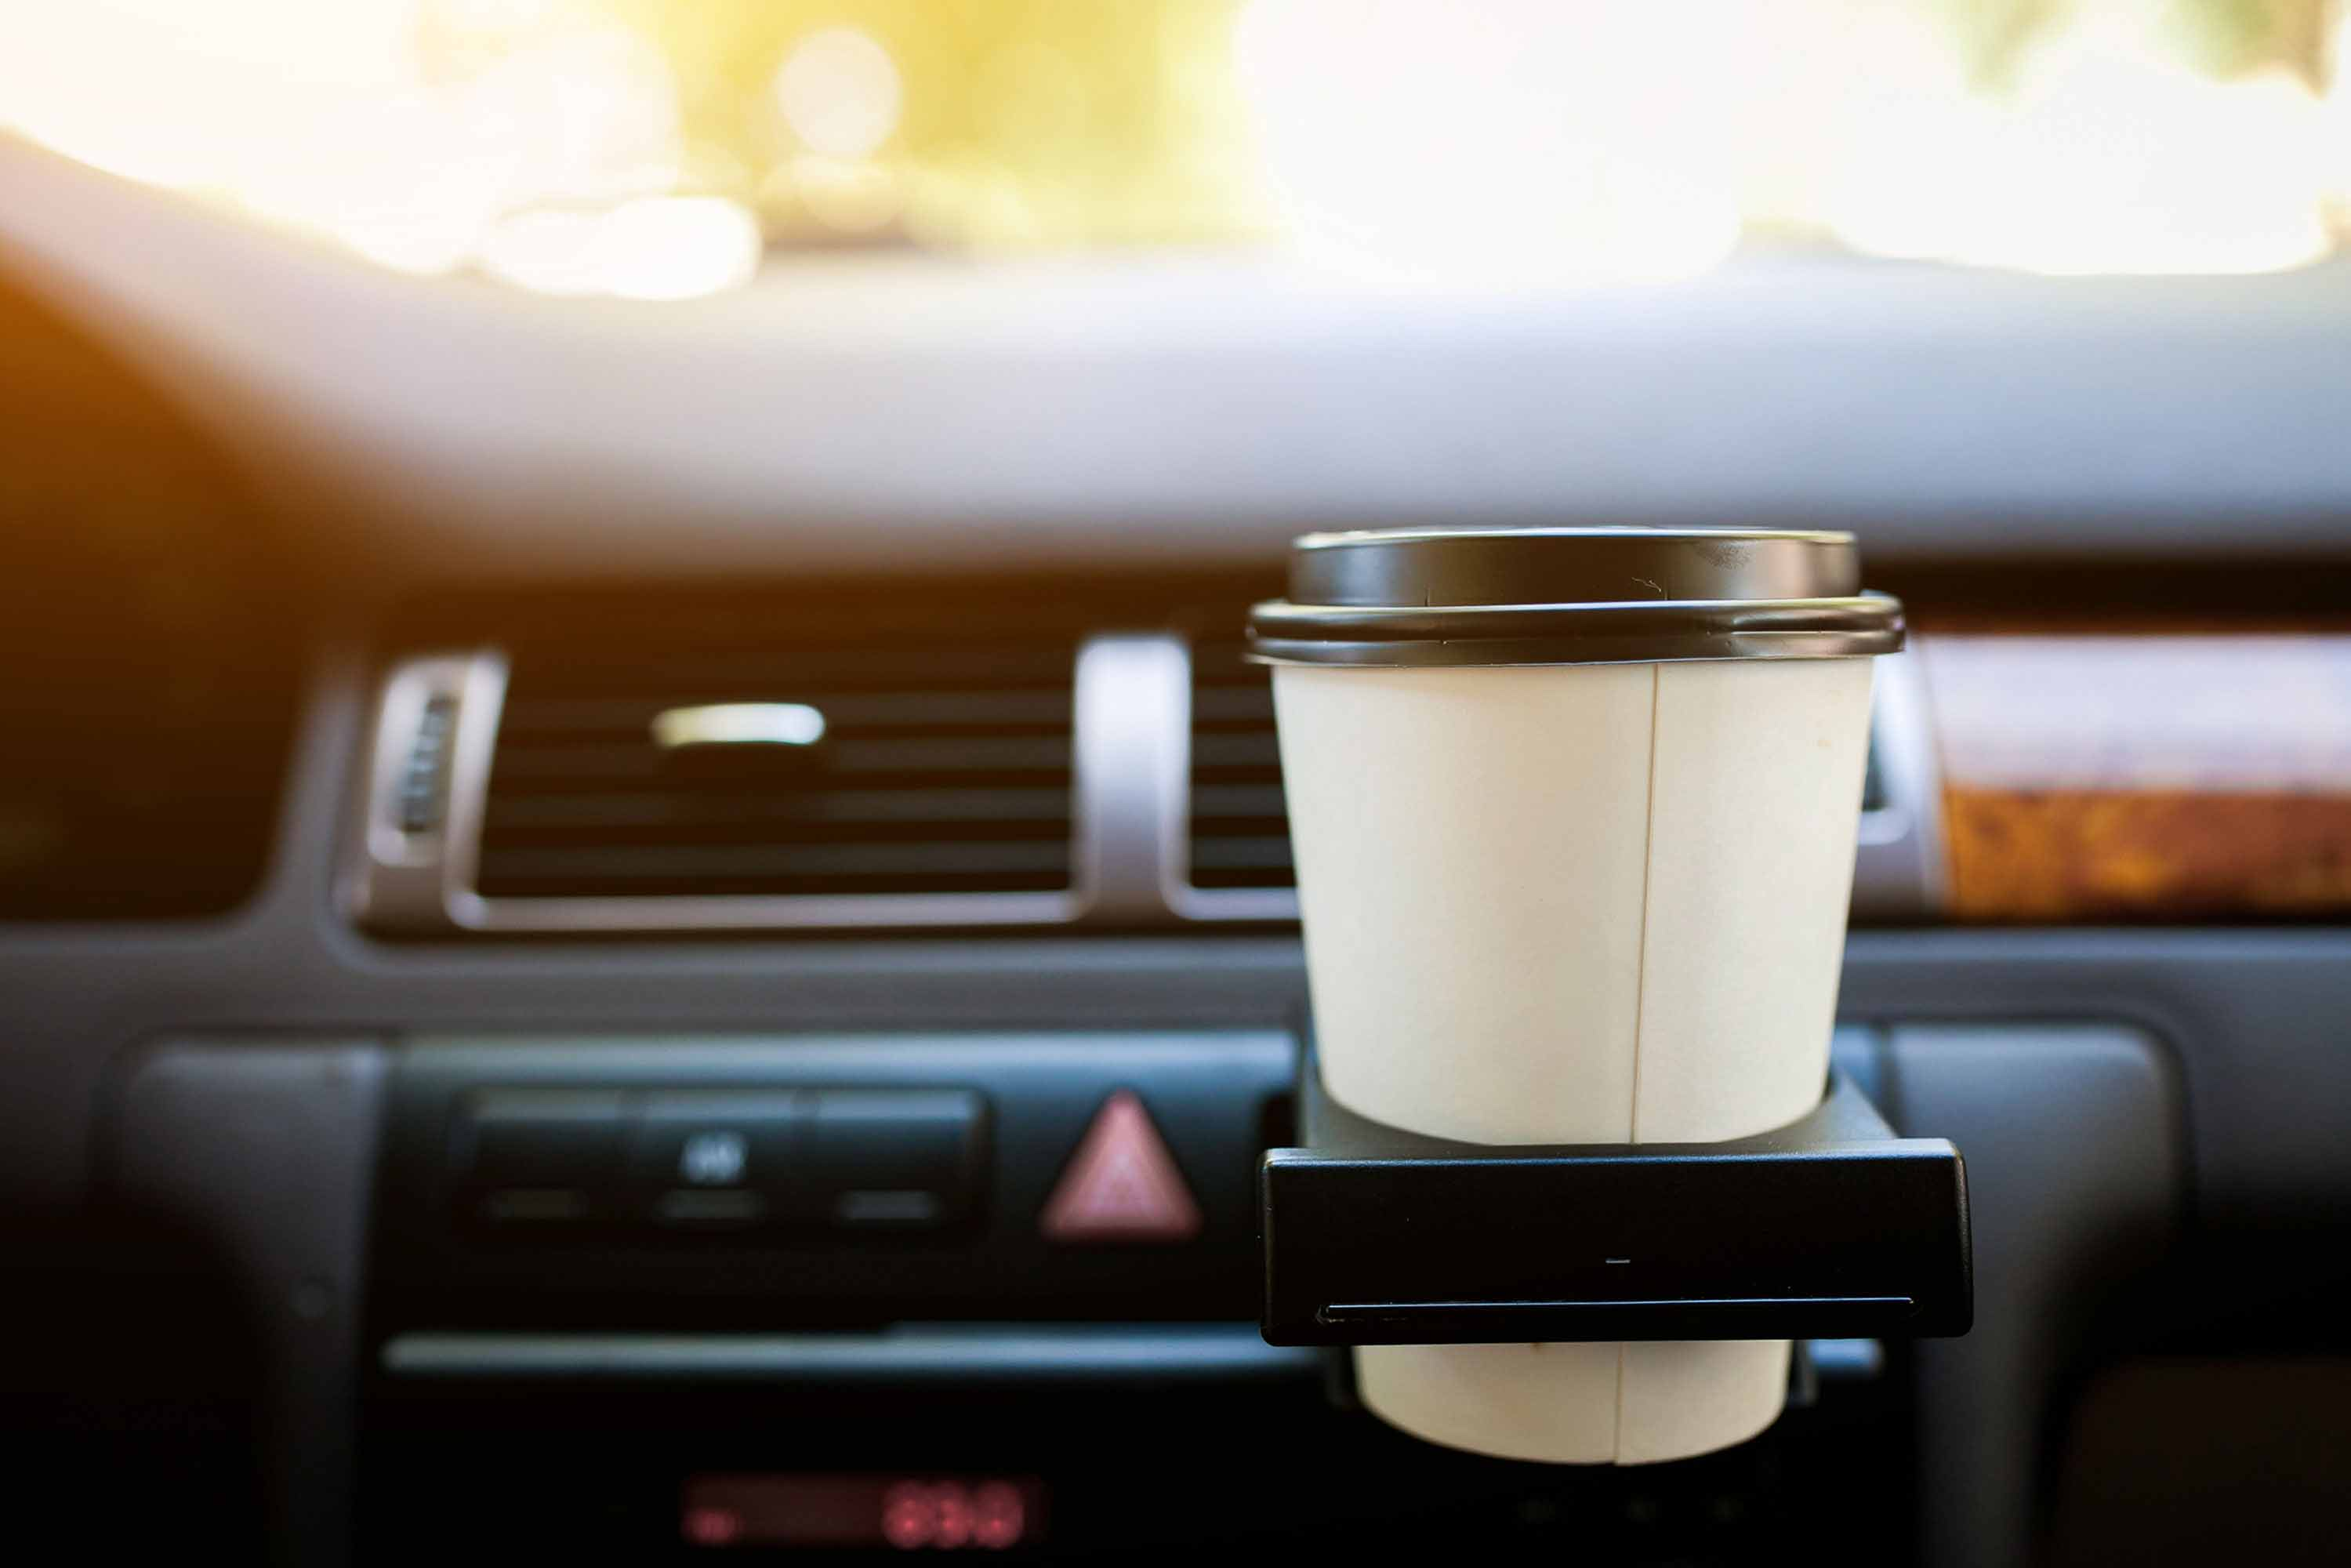 Cup holder inside car